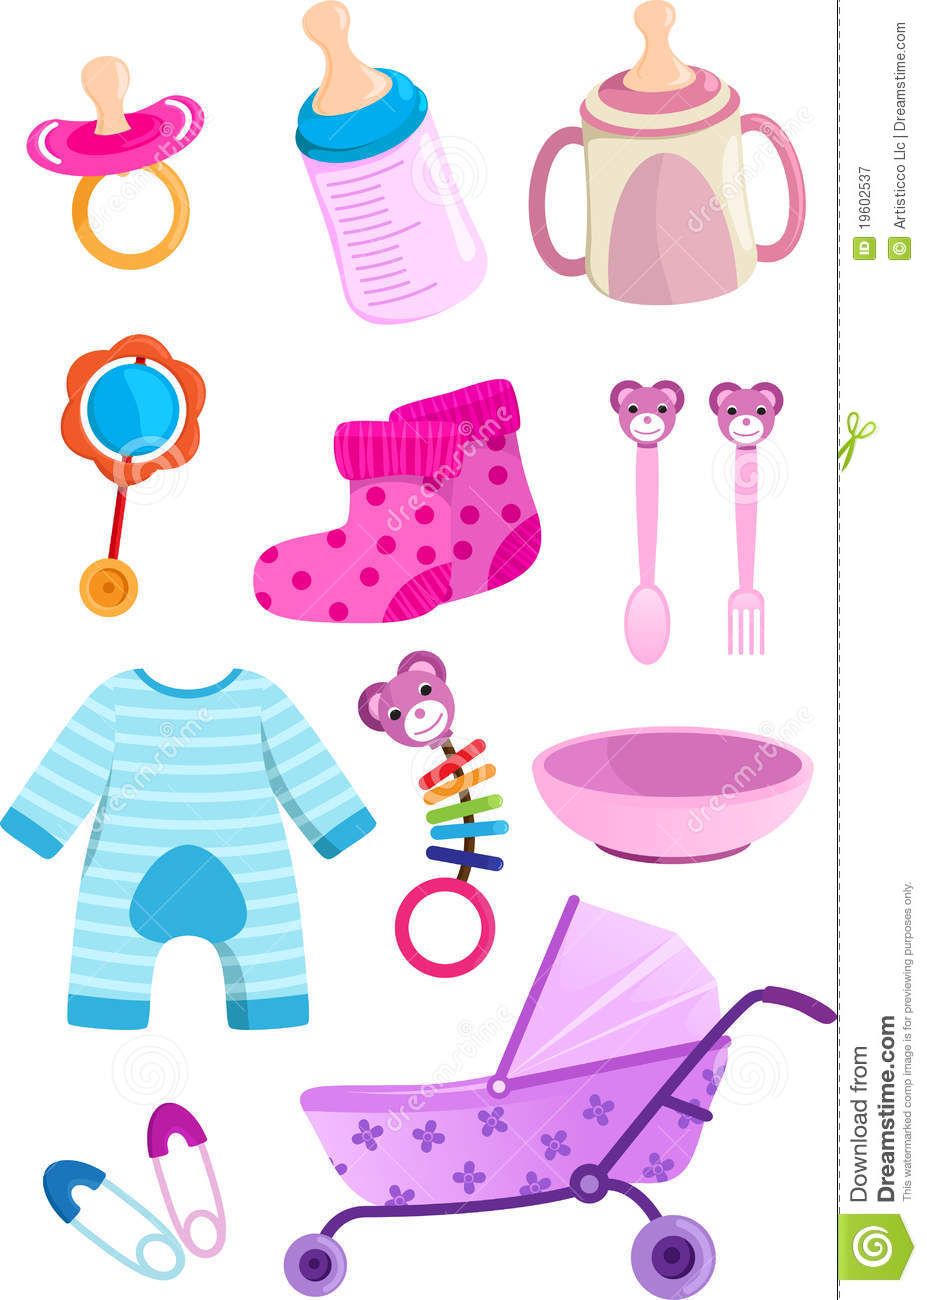 Baby Items Royalty Free Stock Photography Image 19602537